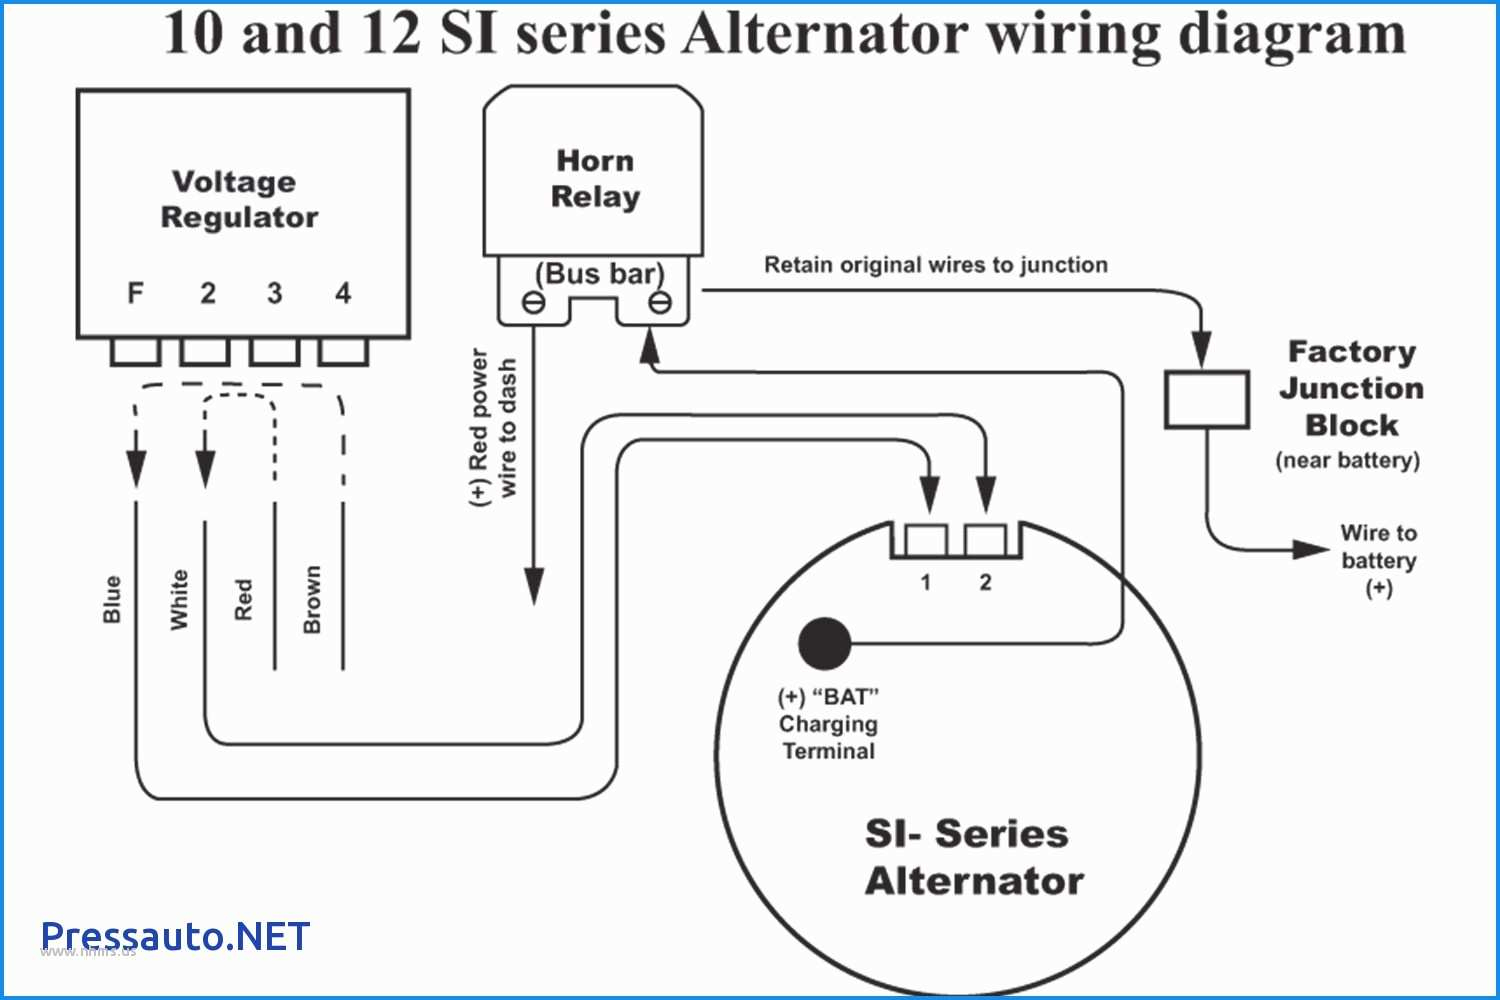 Delco Remy Cs130 Alternator Wiring Diagram | Wiring Diagram - Cs130 Alternator Wiring Diagram